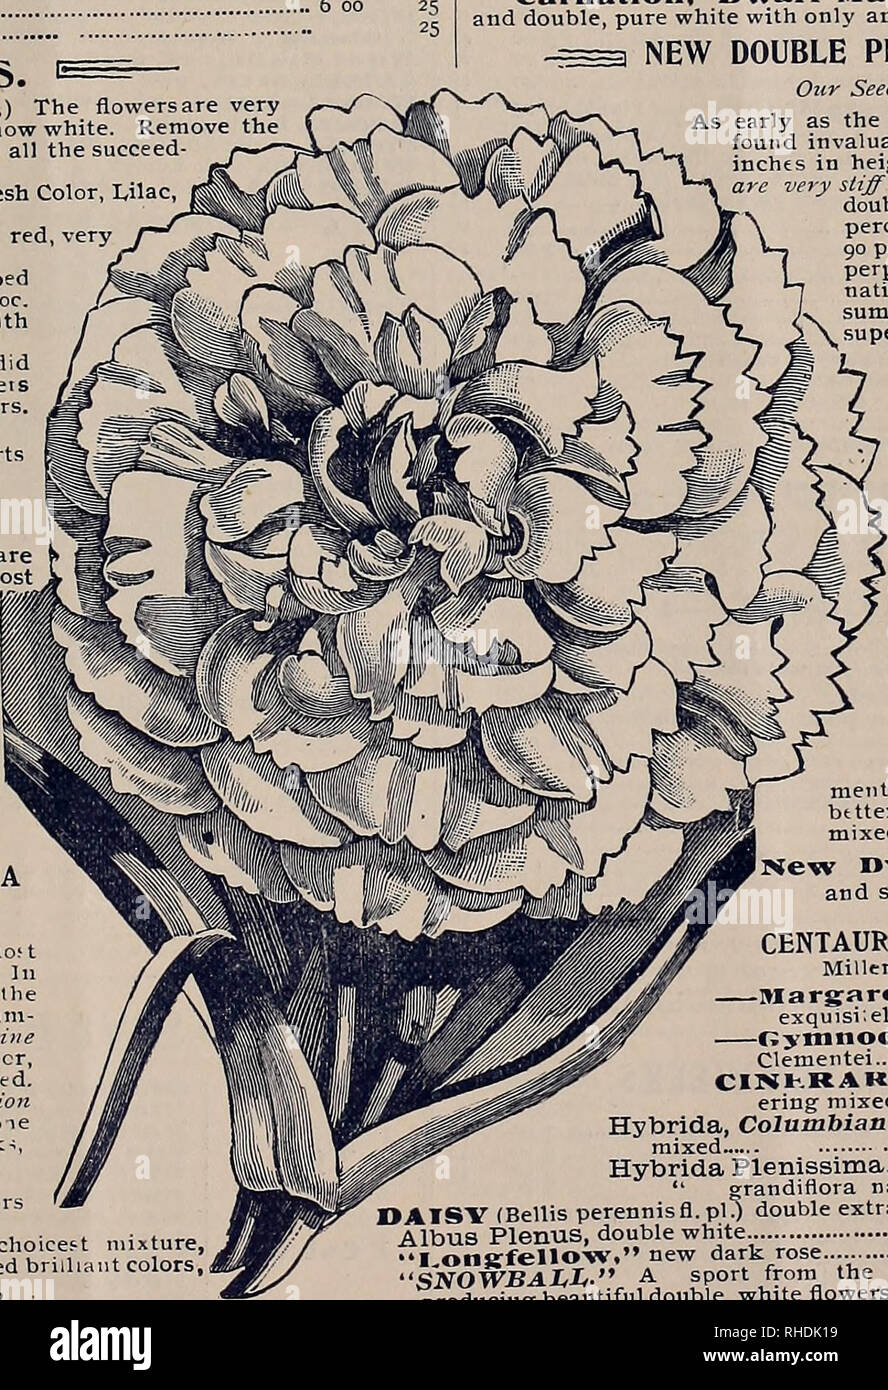 486666e2a Flowers Seeds Catalogs; Flowers Seedlings Catalogs; Gardening Equipment and  .